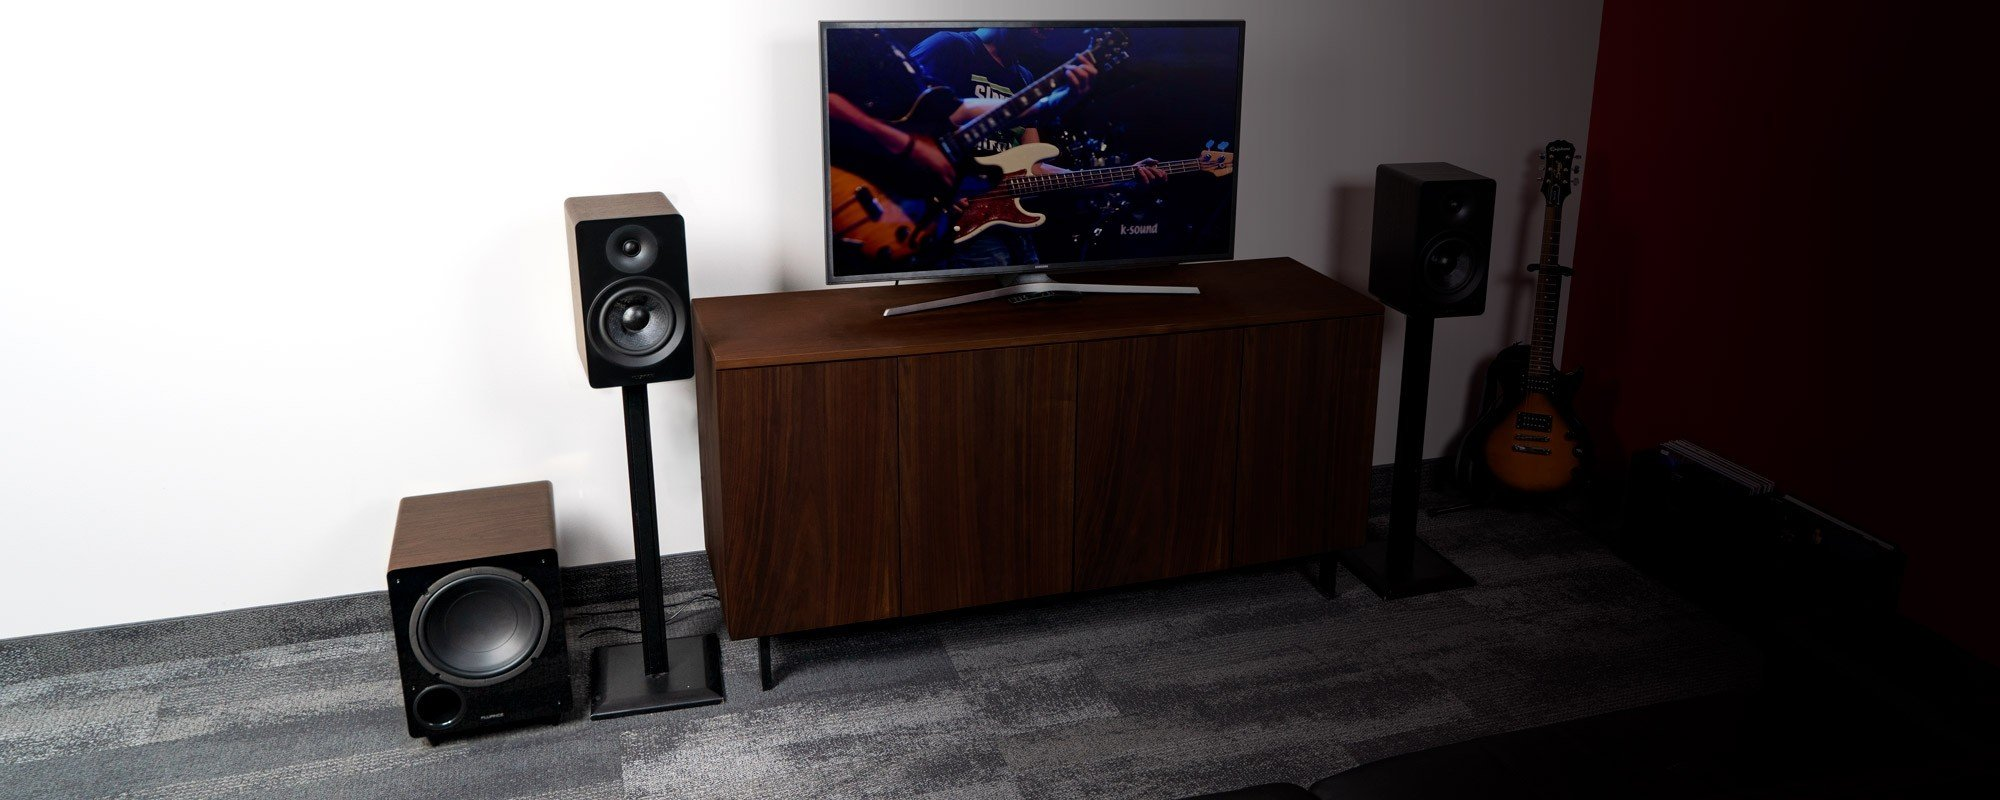 "Ai61 Powered 6.5"" Stereo Bookshelf Speakers and DB10 10-Inch Low Frequency Ported Front Firing Powered Subwoofer - Lifestyle"